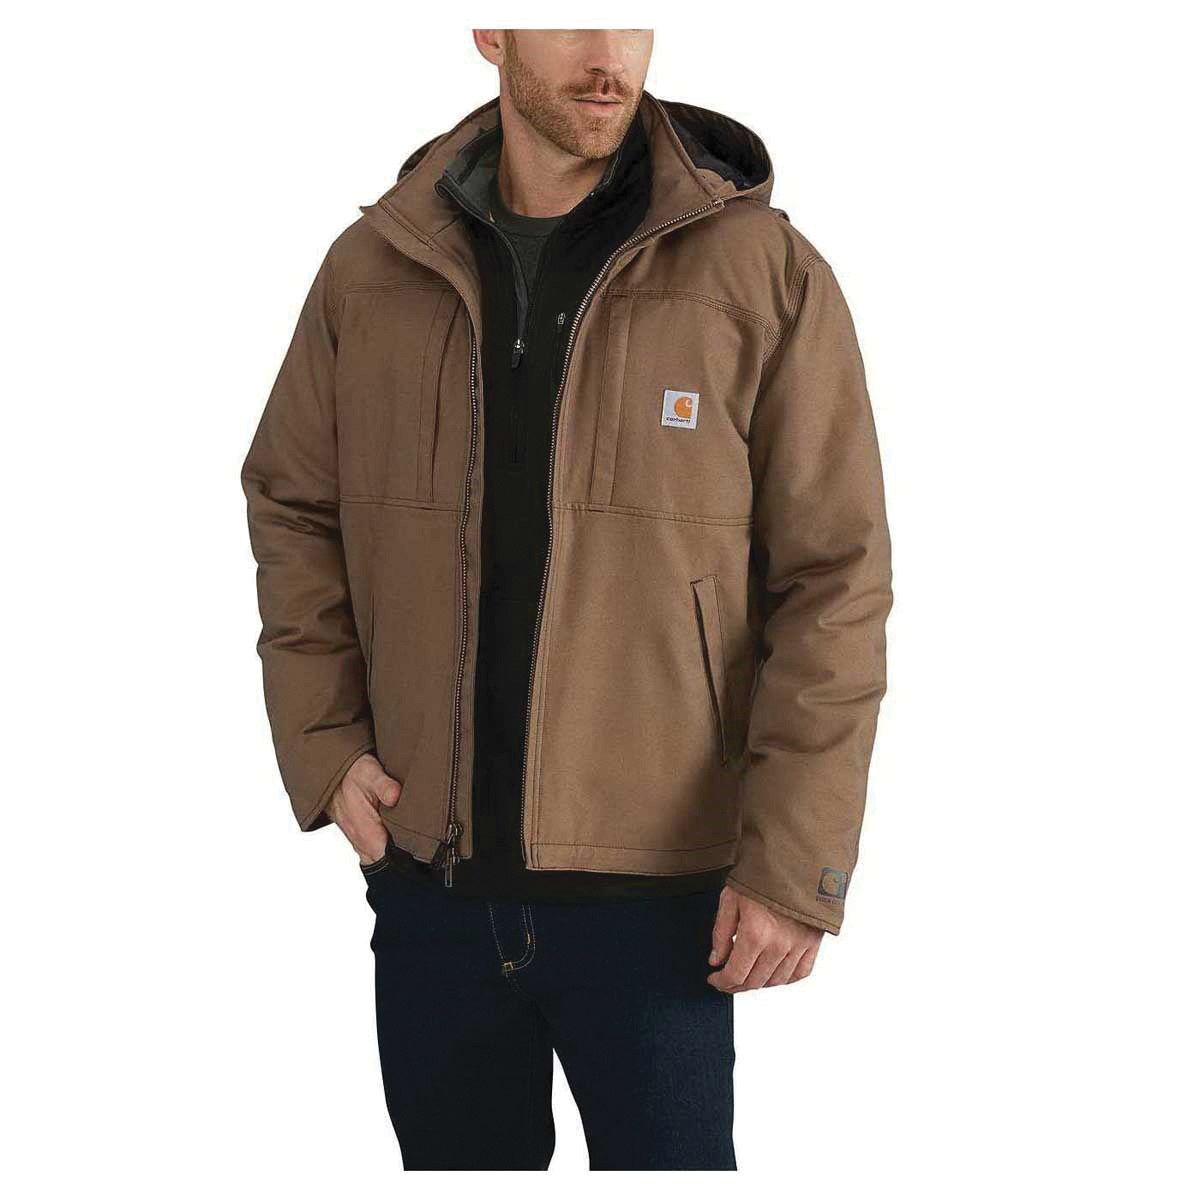 Picture of Carhartt 102207-908-L-R Cryder Jacket, L, 42 to 44 in Chest, Cotton/Polyester/Spandex, Canyon Brown, Regular